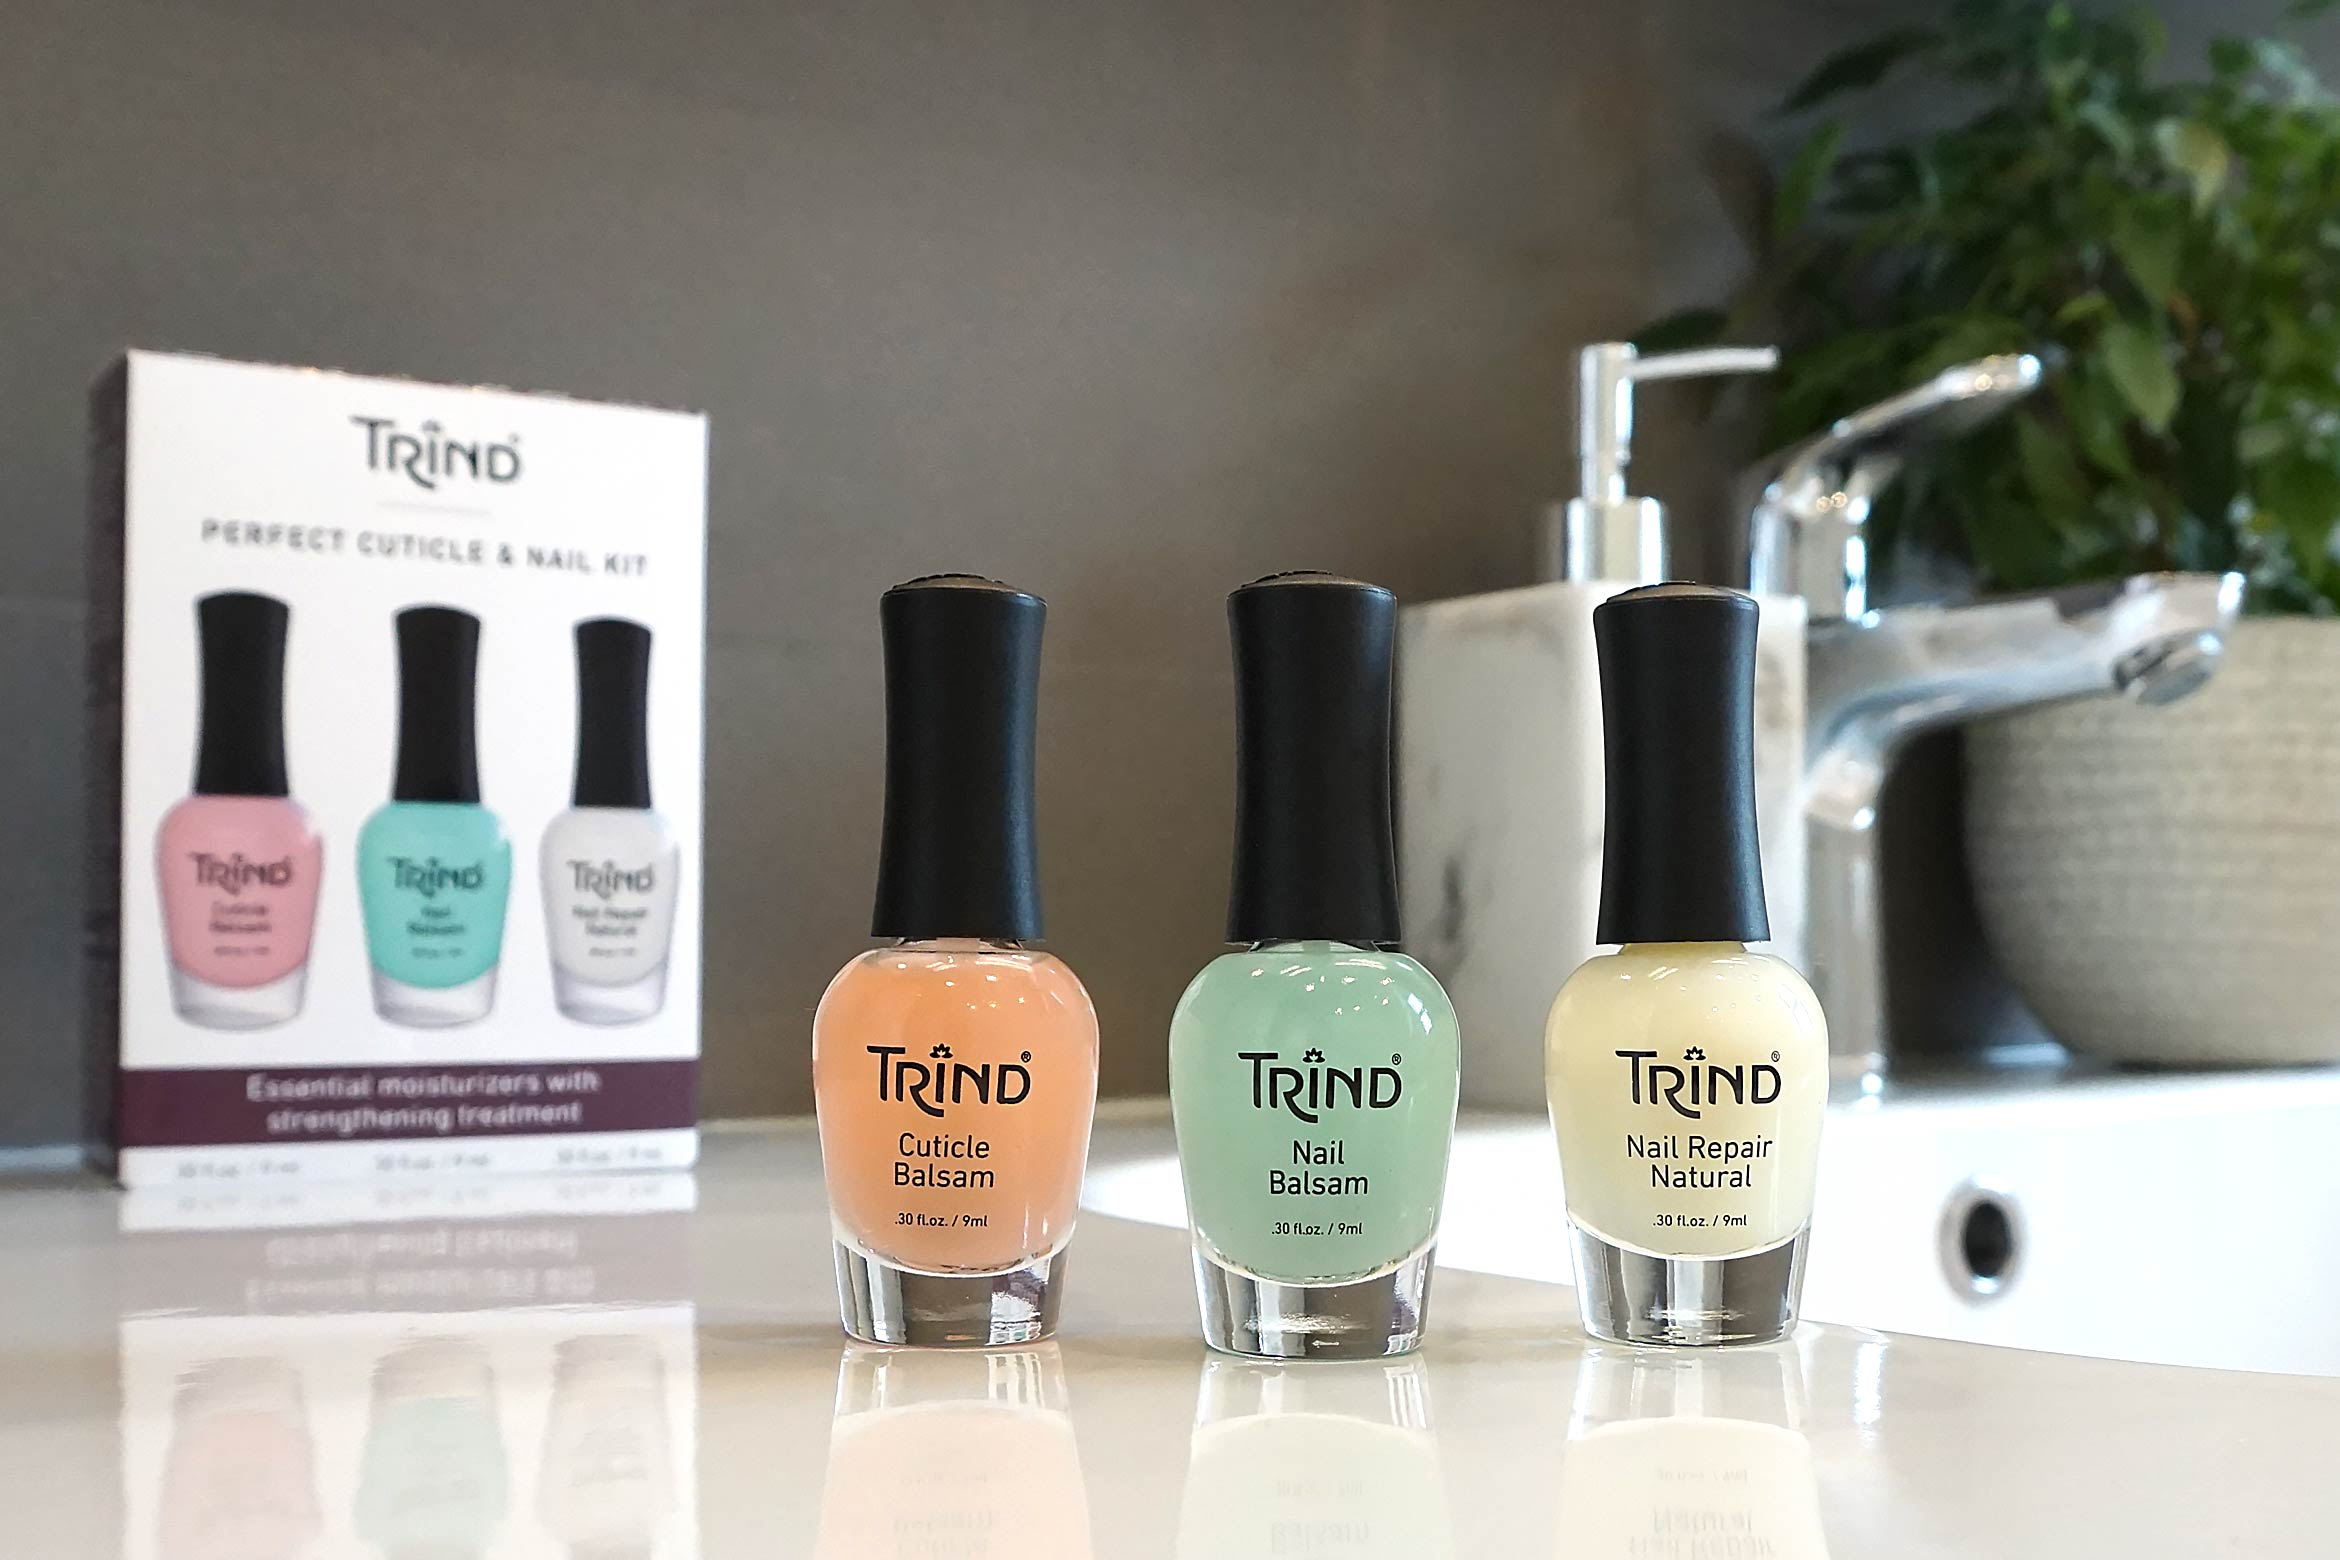 trind perfect cuticle nail kit review